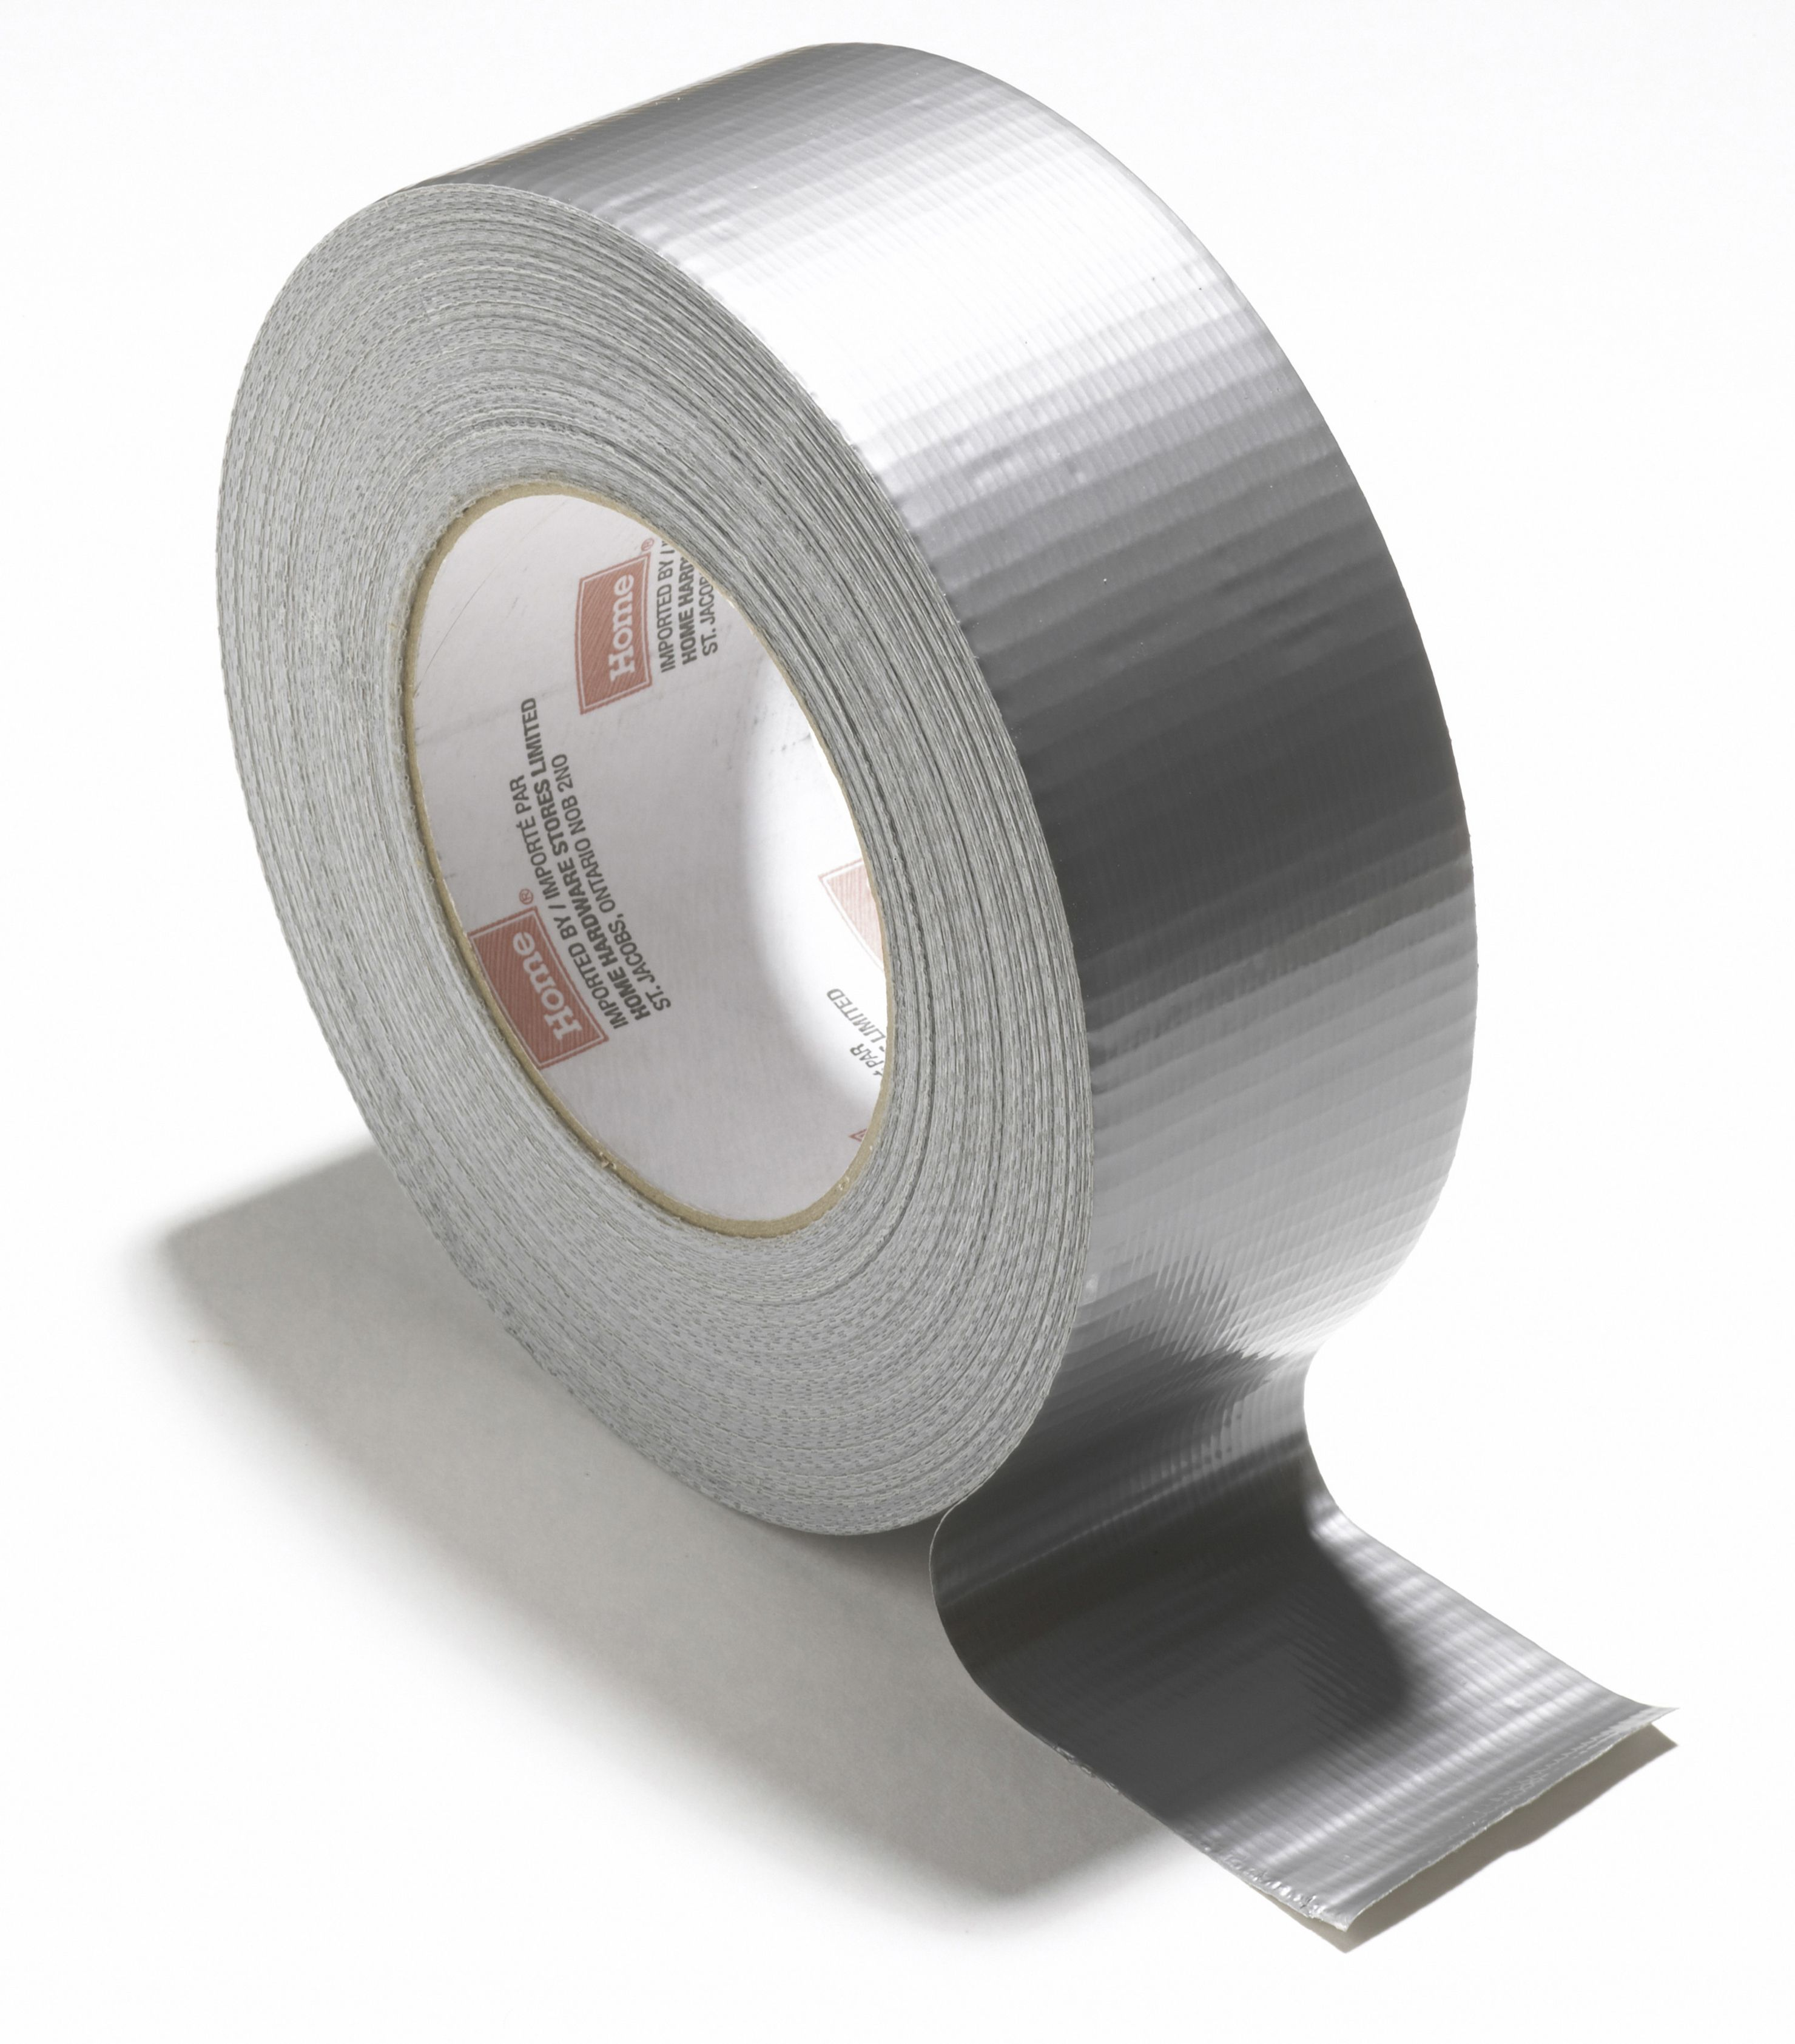 Scotch Tape and Inventor Richard Drew